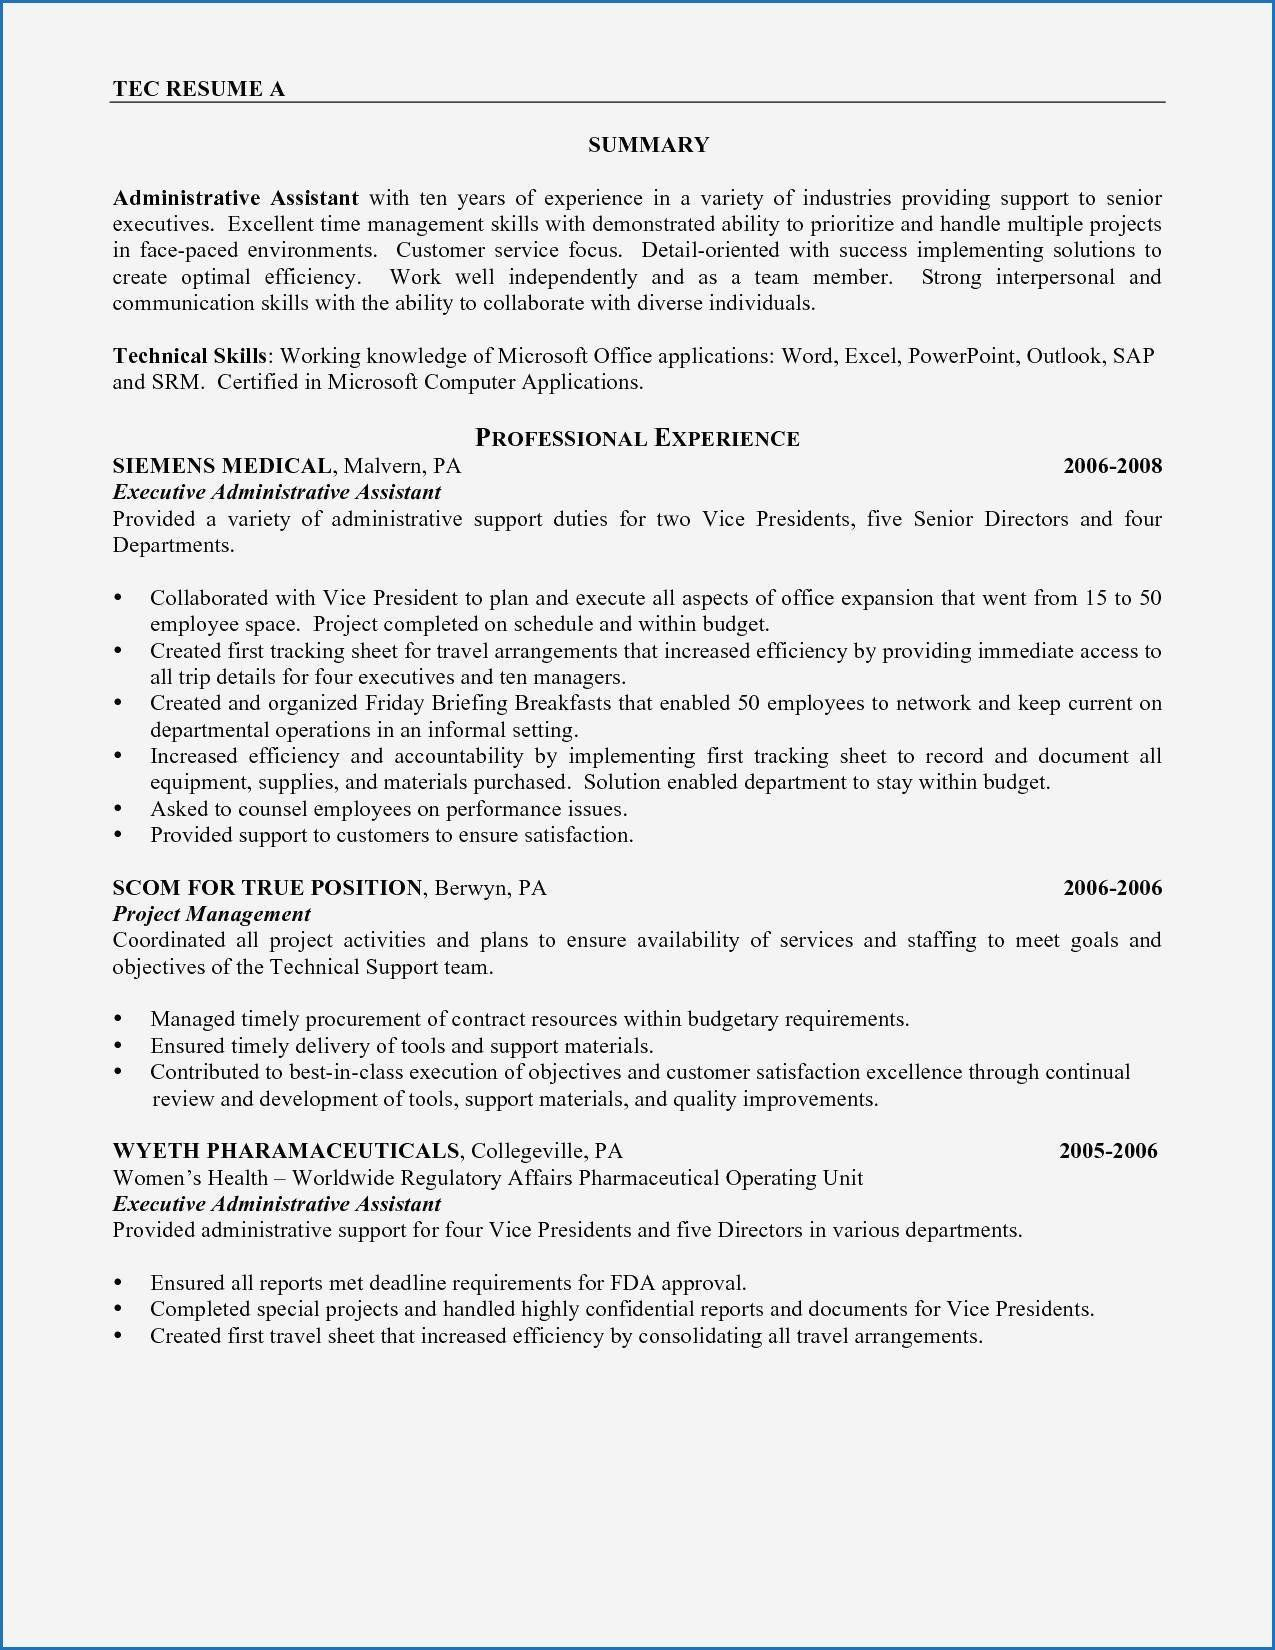 Medical Administrative Assistant Resume Sample Fresh Resume Template Admin Assistant Exam Resume Skills Resume Summary Examples Administrative Assistant Resume Example of smart objectives admin staff